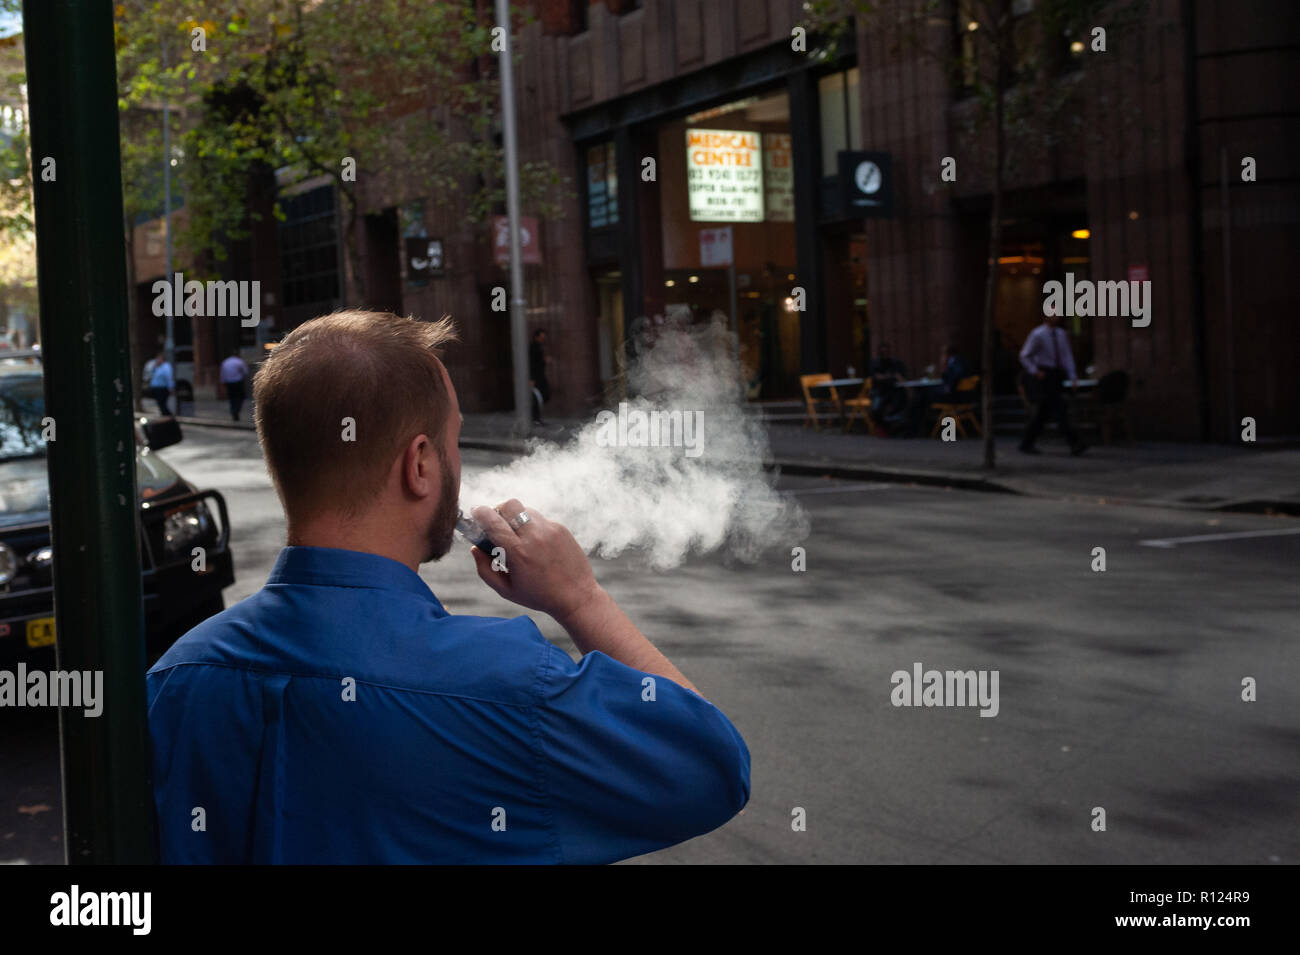 10.05.2018, Sydney, New South Wales, Australia - A man is smoking an electronic cigarette / e-cigarette on a street in Sydney's business district. - Stock Image